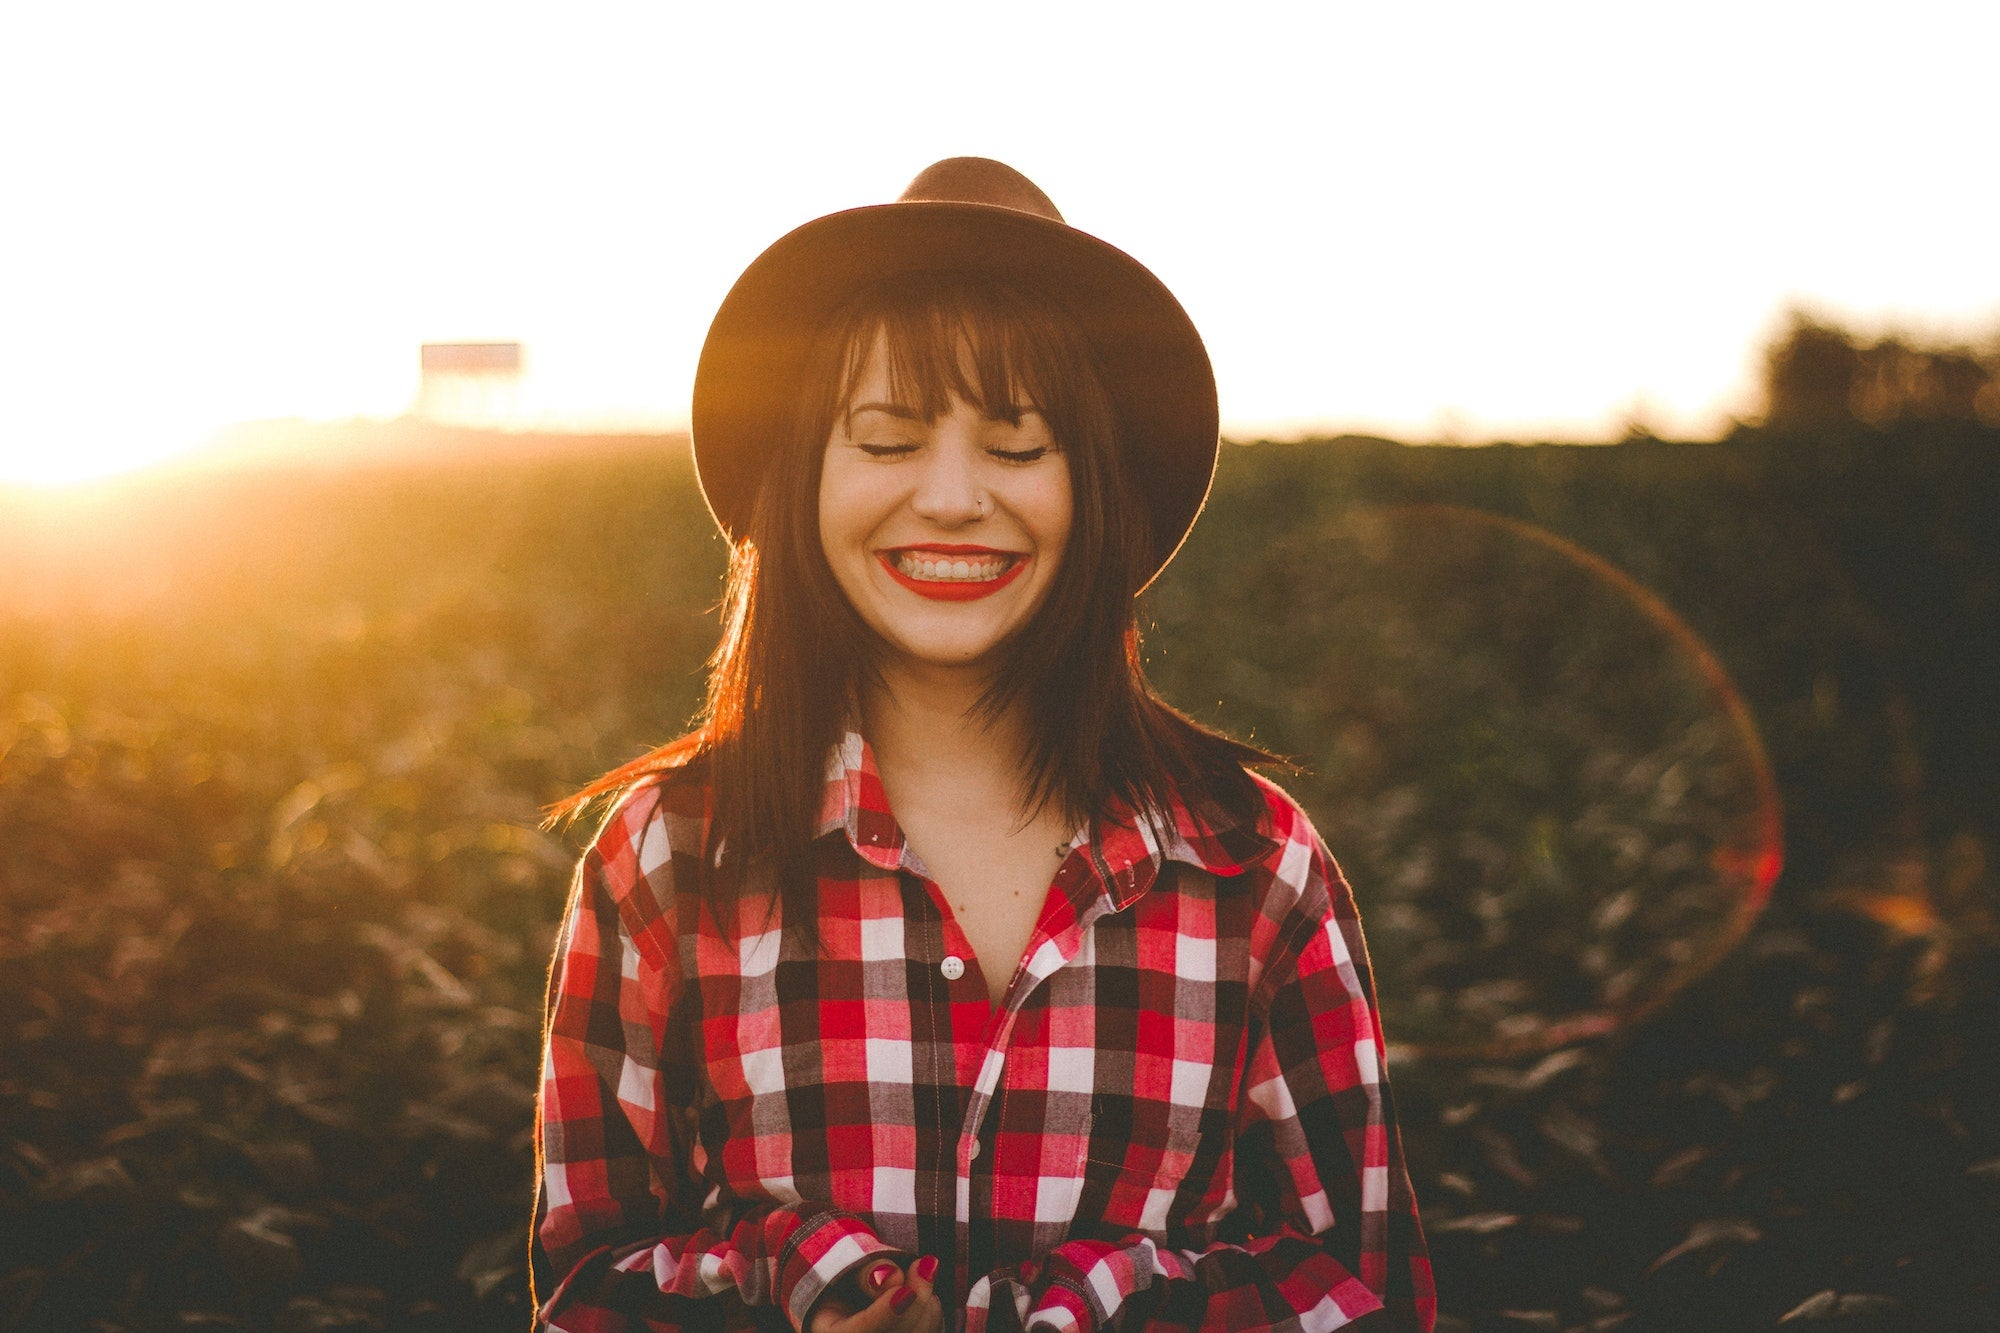 Woman in plaid shirt and hat, smiling with her eyes closed during golden hour